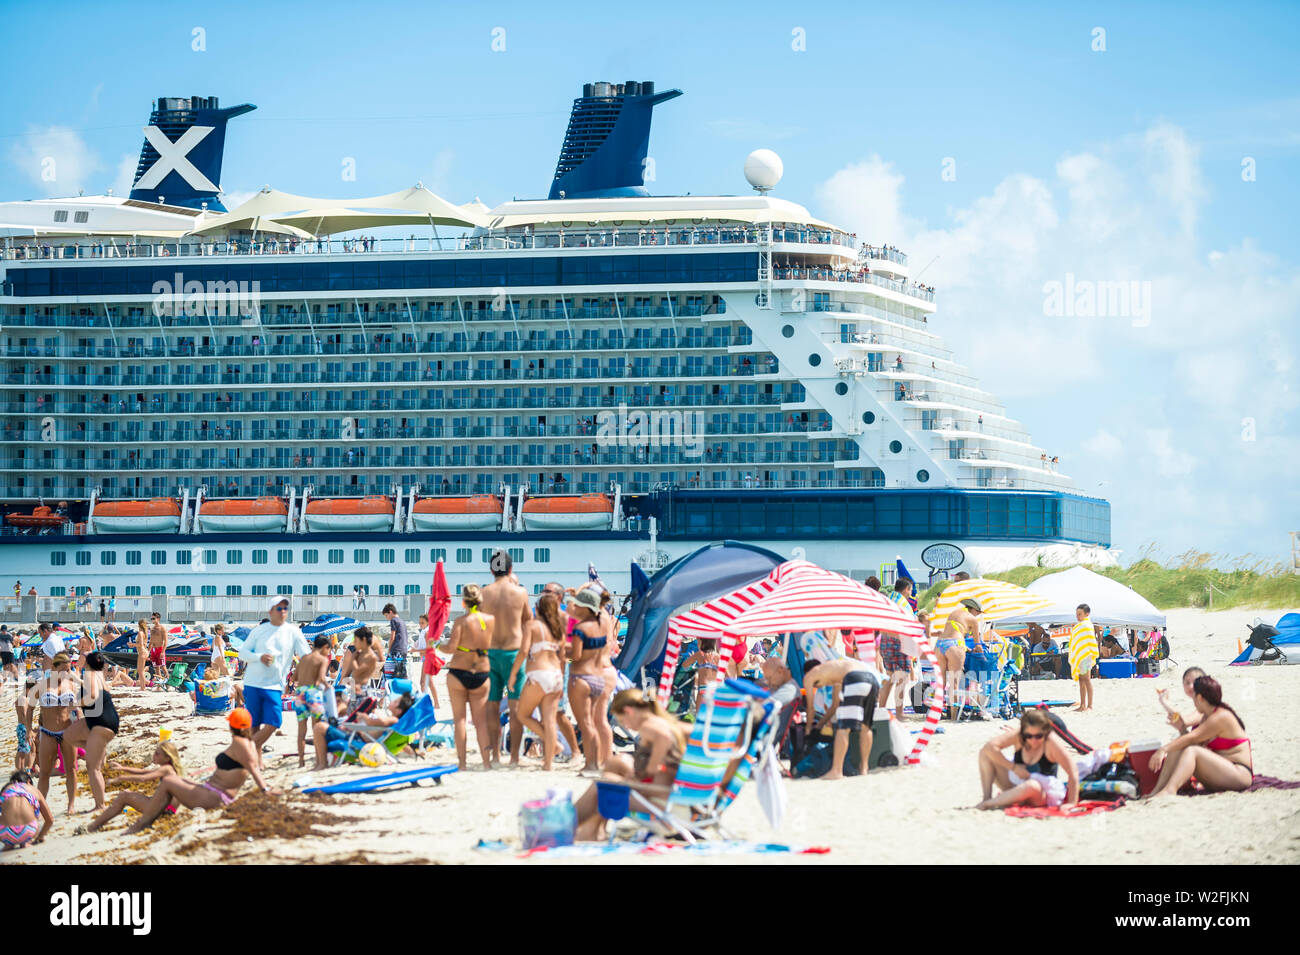 Equinox South Beach >> Miami June 12 2018 The Celebrity Equinox Cruise Ship